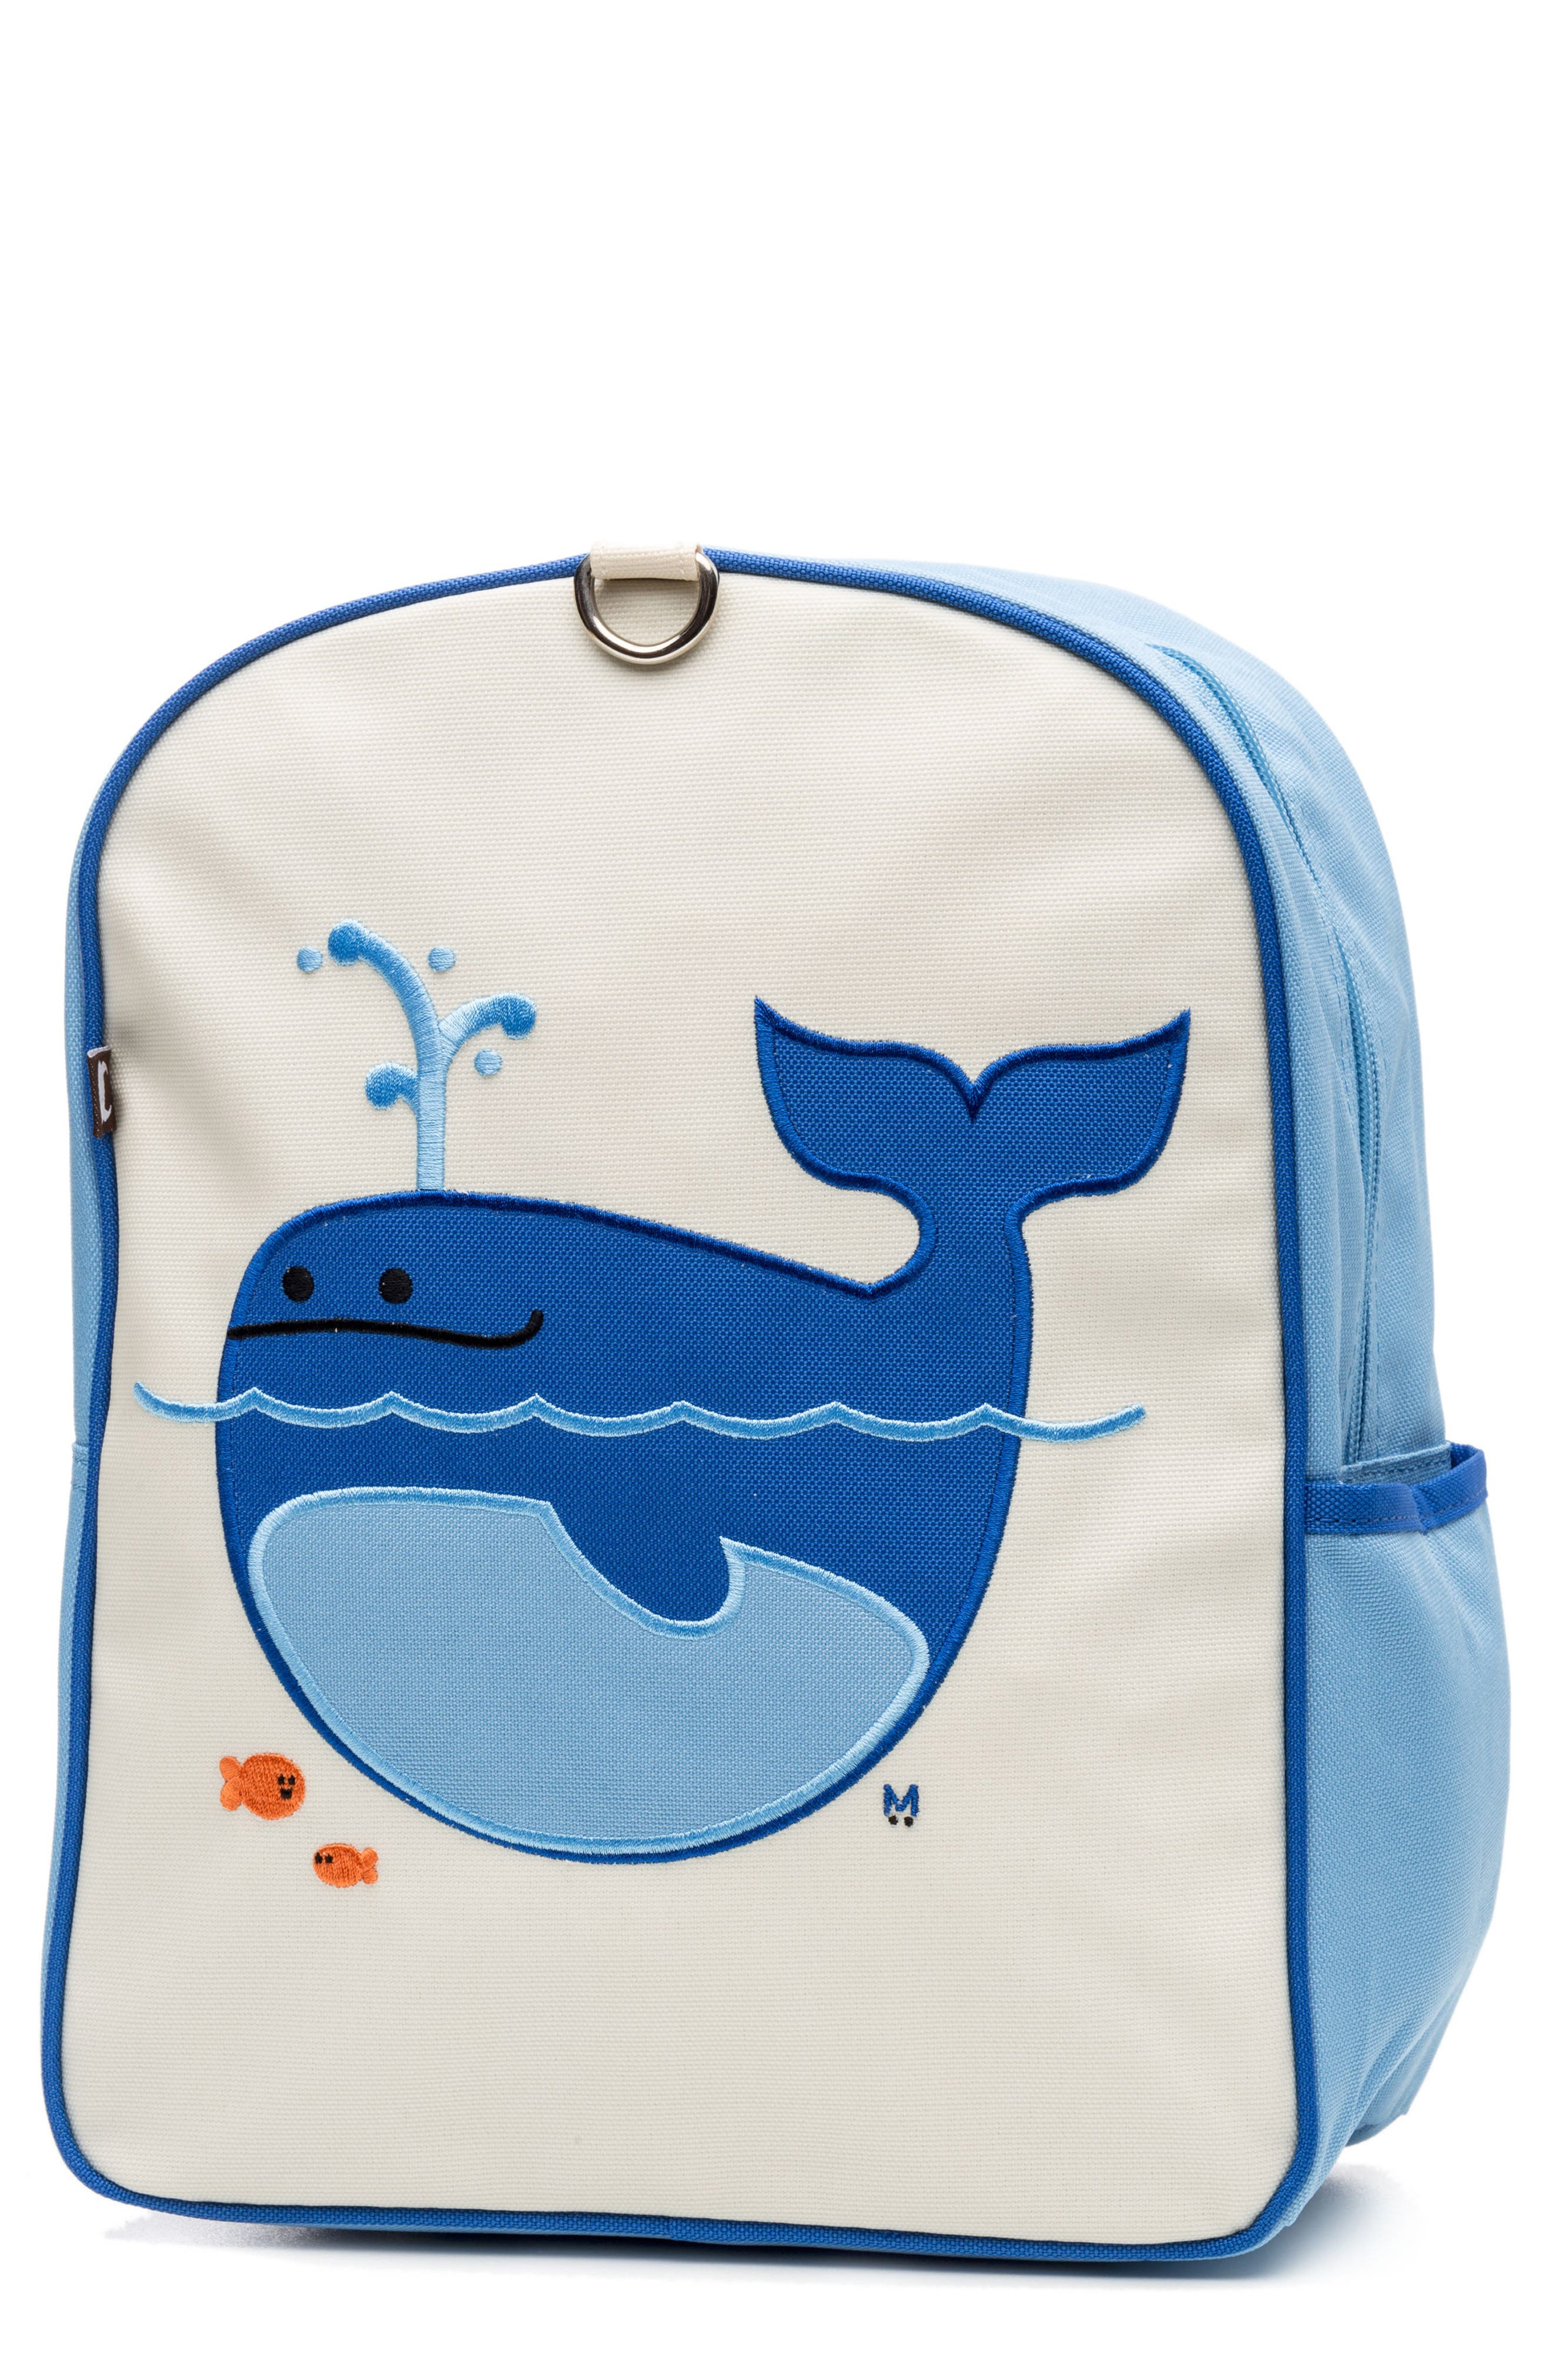 Little Kid Backpack,                         Main,                         color, Lucas The Whale